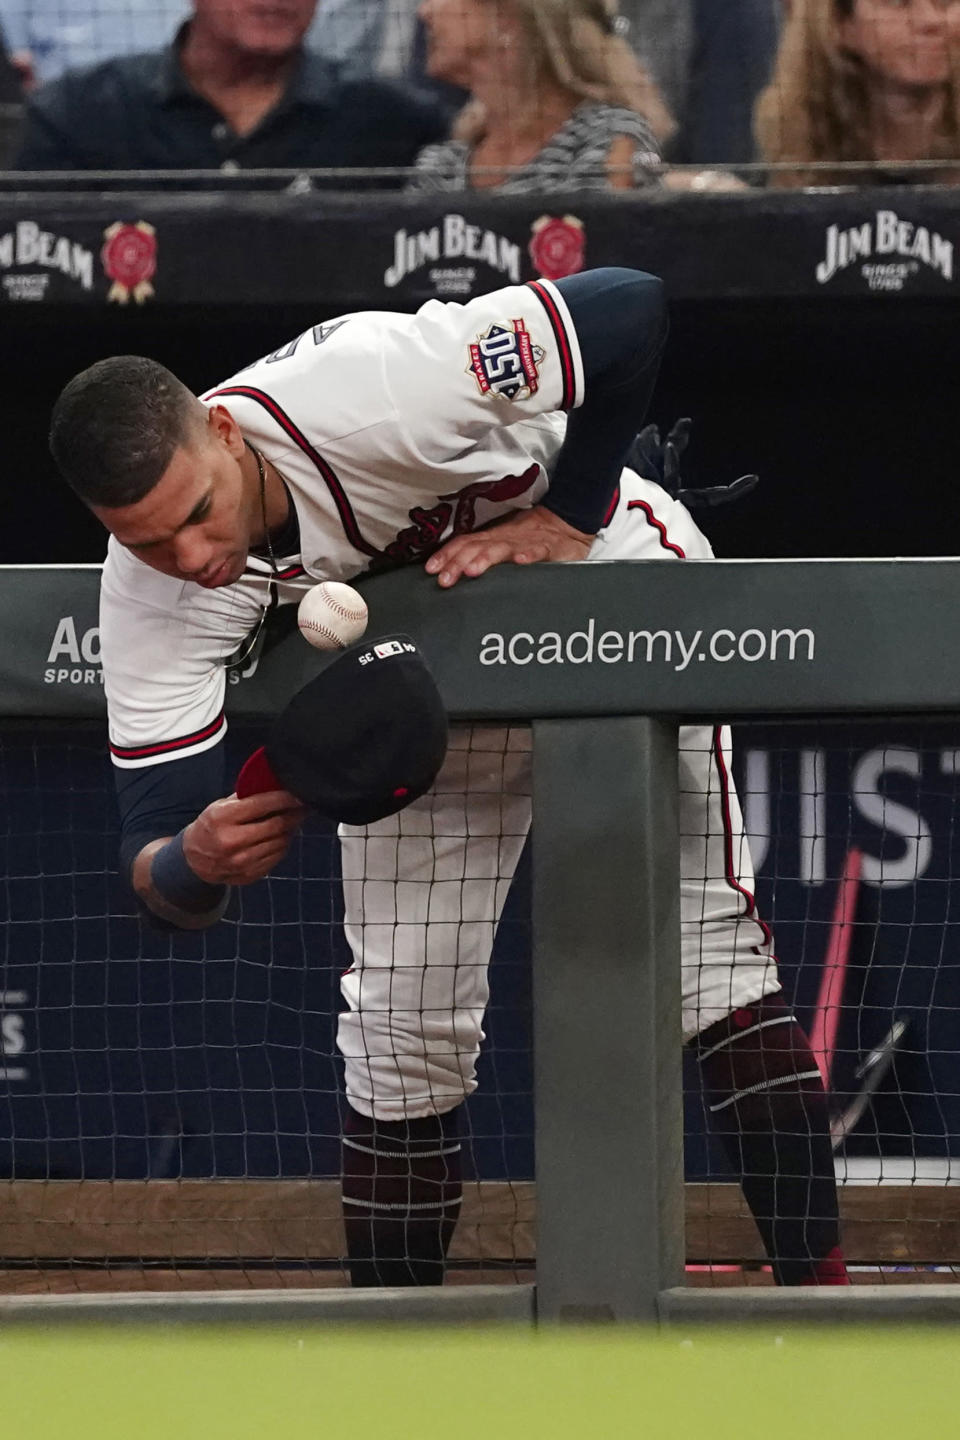 Atlanta Braves' Ehire Adrianza (23) leans over the dugout railing to catch a foul ball in his hat during a baseball game against the Philadelphia Phillies Tuesday, Sept. 28, 2021, in Atlanta. (AP Photo/John Bazemore)